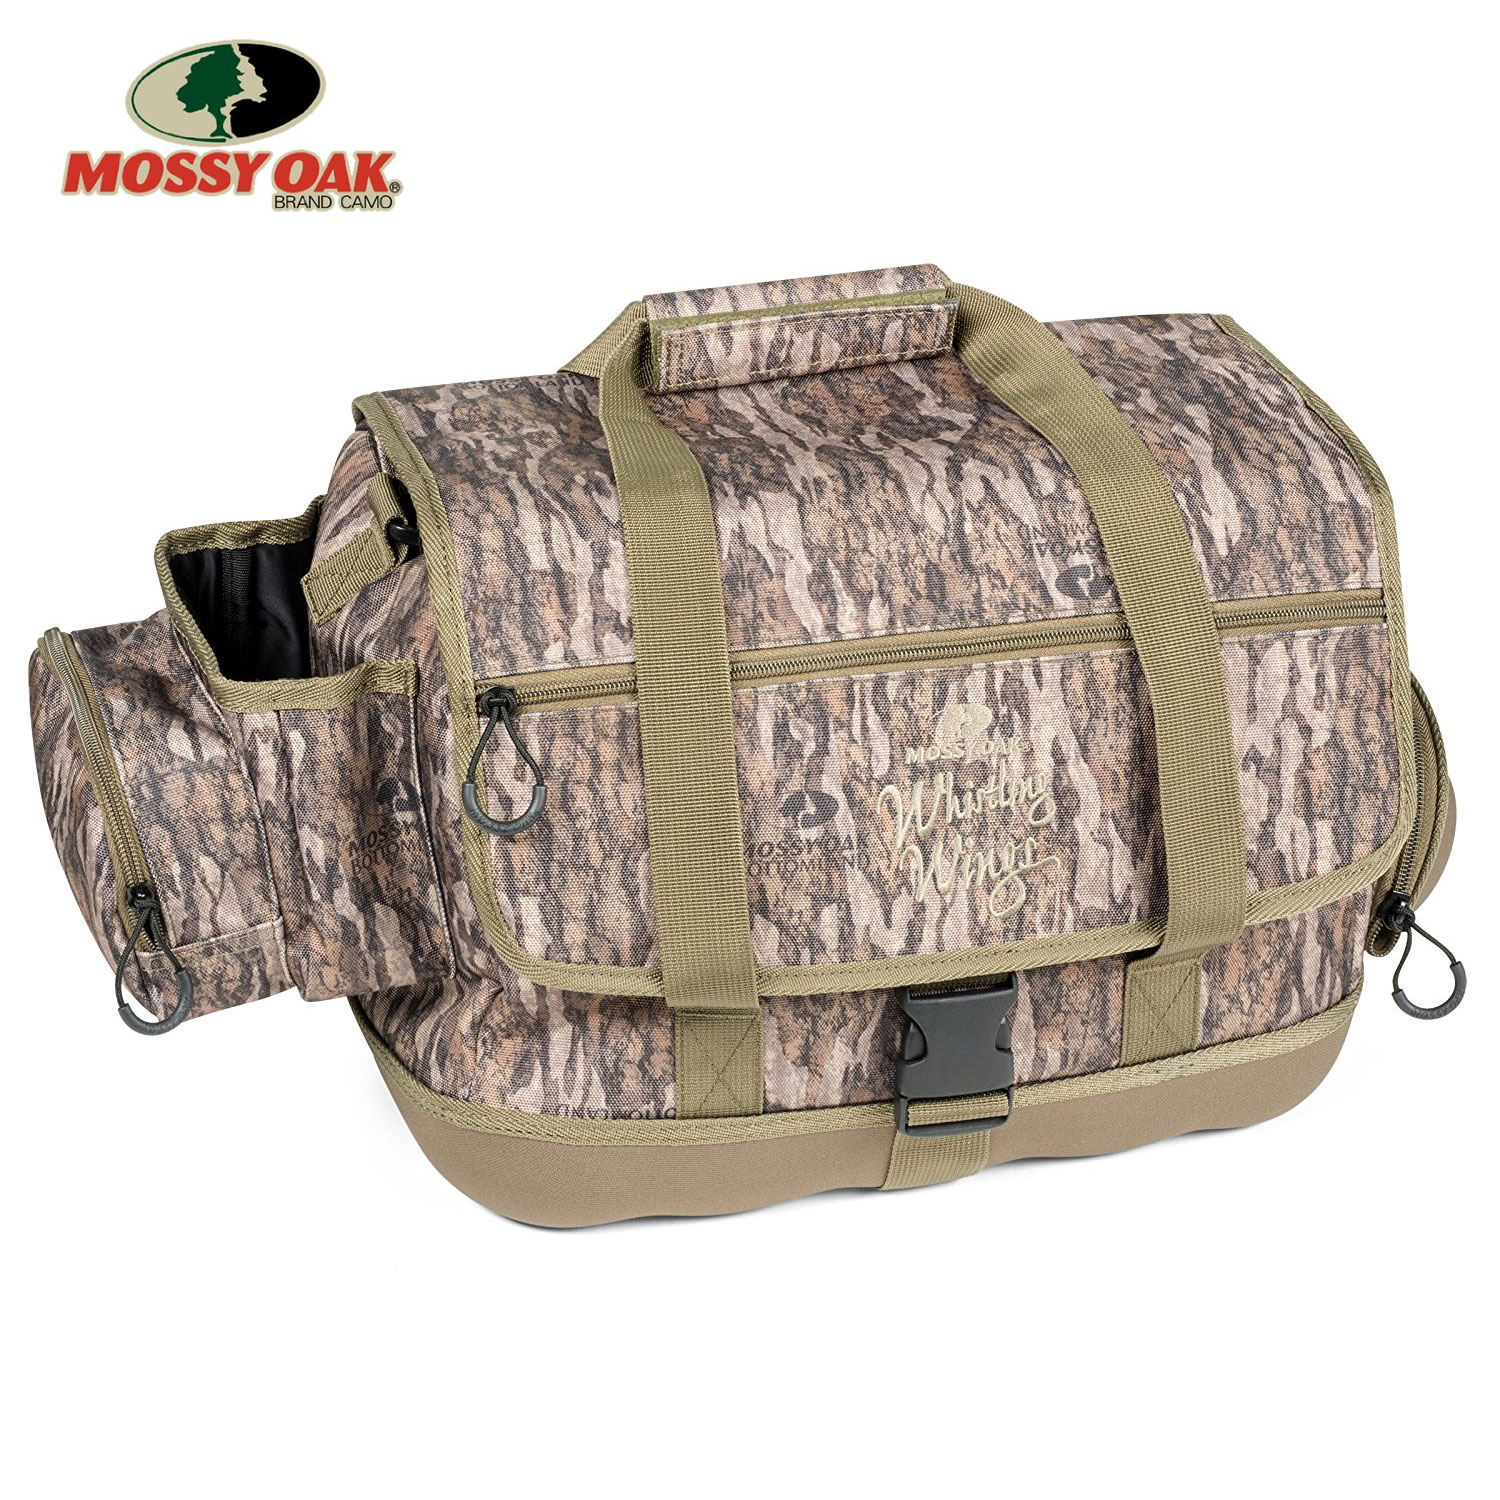 Mossy Oak Whistling Wings Glade Blind Bag- MOBL